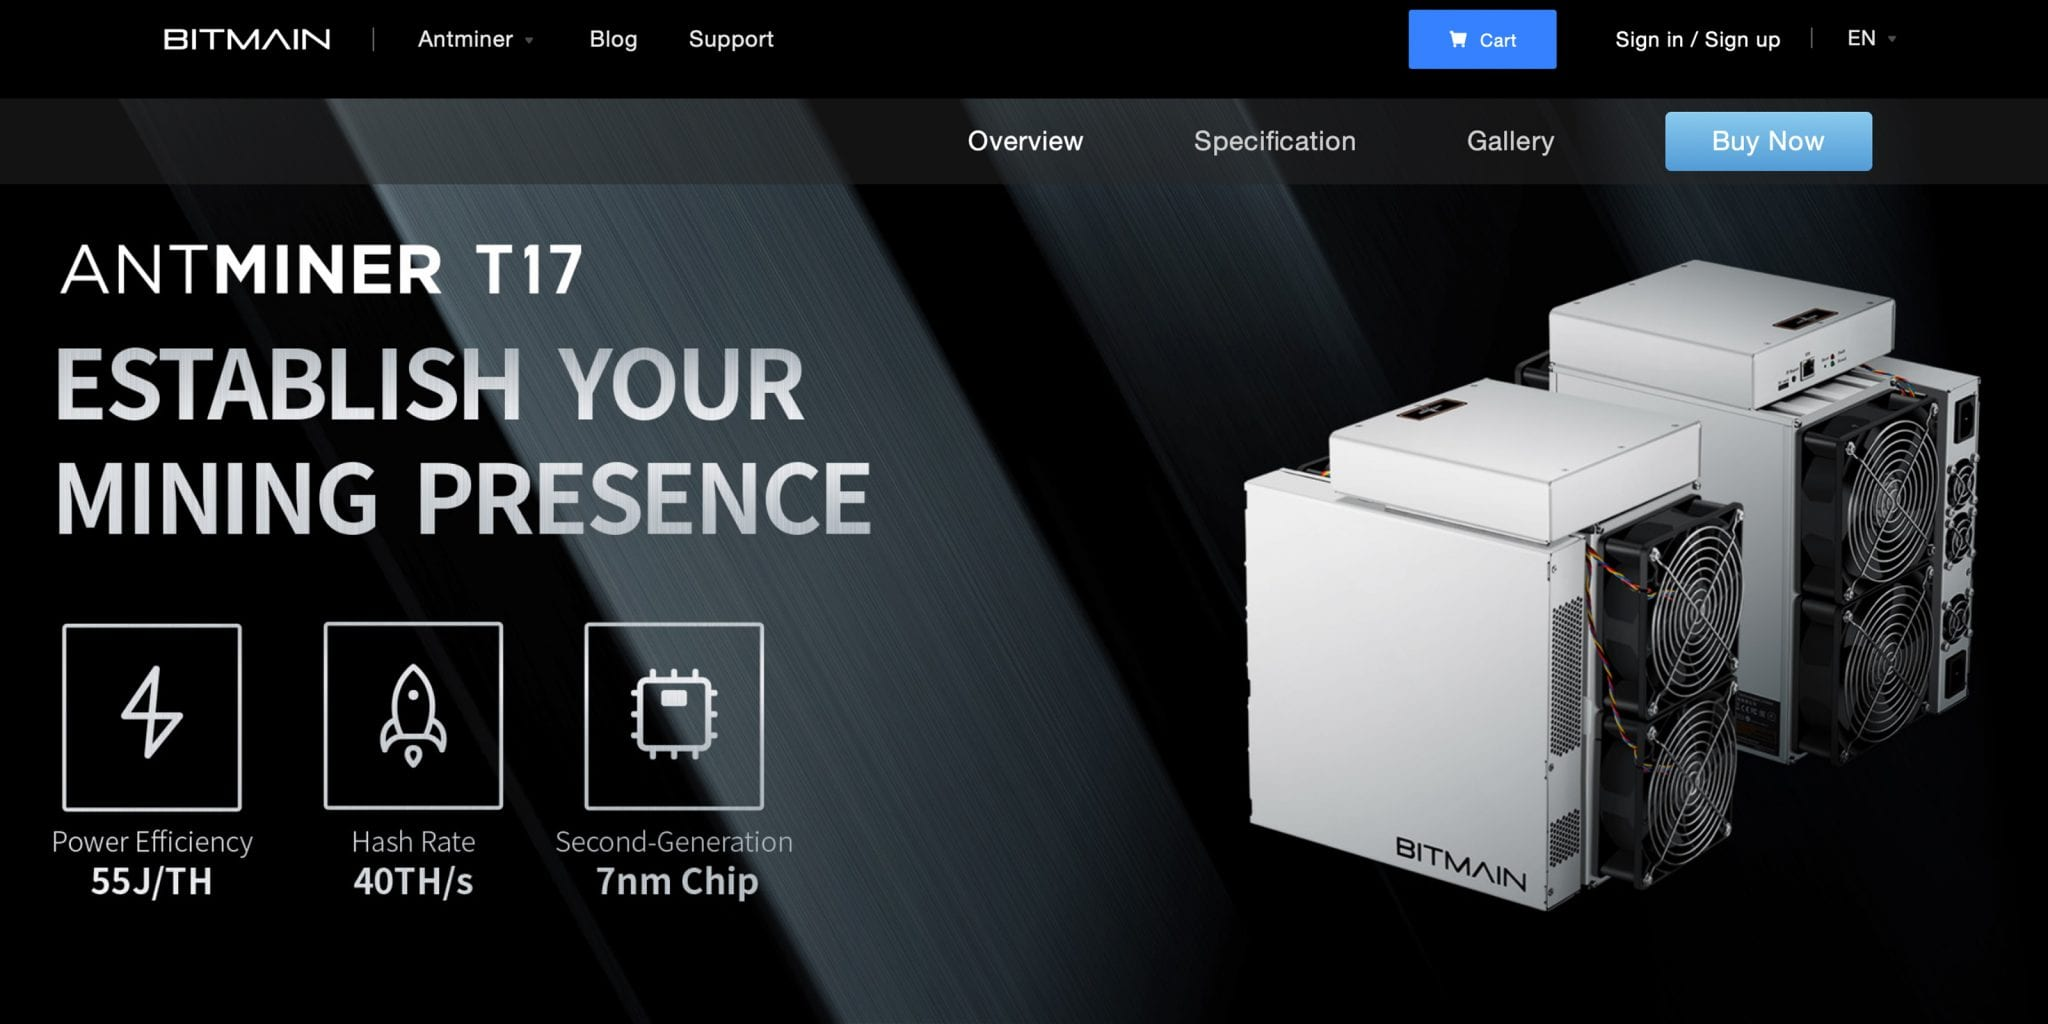 Bitmain Aims to Leapfrog Competition With Its Next-Gen Bitcoin Miner